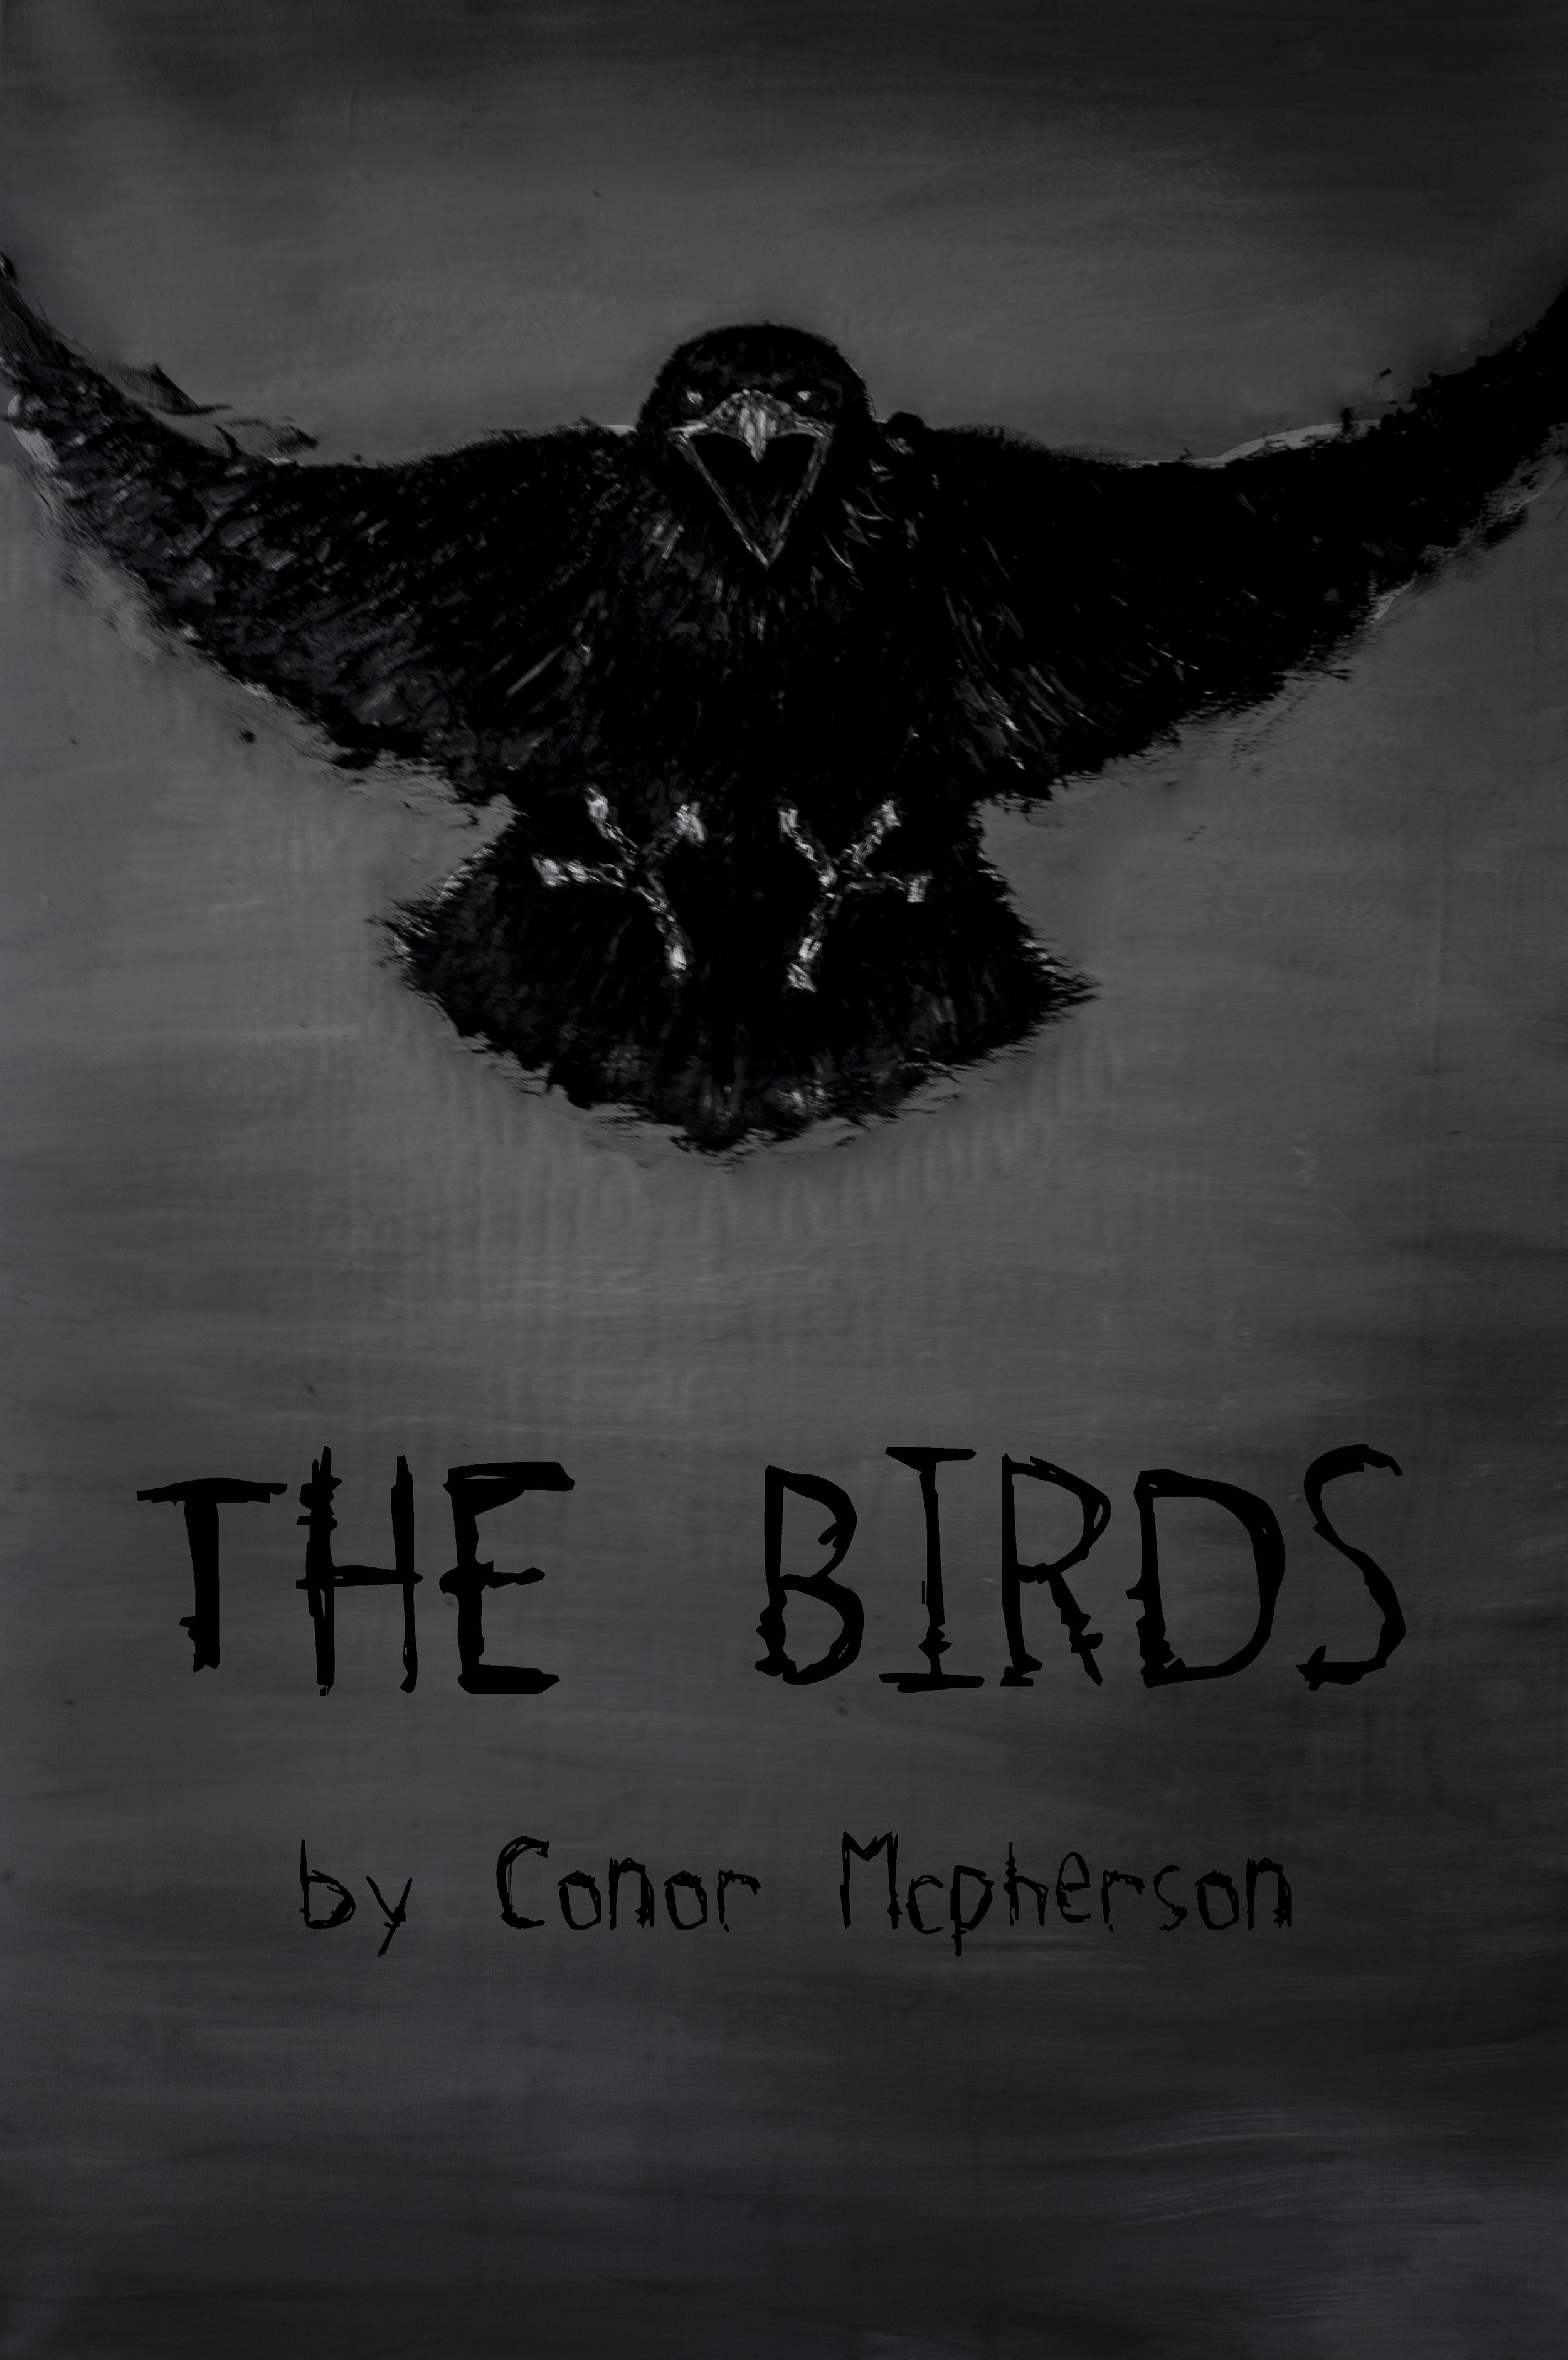 The Birds - by Conor McPhersonOct 18, 2019 - Nov 3, 2019Daphne du Maurier's short story, also the basis for Alfred Hitchcock's classic film, is boldly adapted by Conor McPherson—a gripping, unsettling, and moving look at human relationships in the face of societal collapse. In an isolated house, strangers Nat and Diane take shelter from relentless masses of attacking birds. They find relative sanctuary but not comfort or peace; there's no electricity, little food, and a nearby neighbor may still be alive and watching them. Another refugee, the young and attractive Julia, arrives with some news of the outside world, but her presence also brings discord. Their survival becomes even more doubtful when paranoia takes hold of the makeshift fortress—an internal threat to match that of the birds outside.